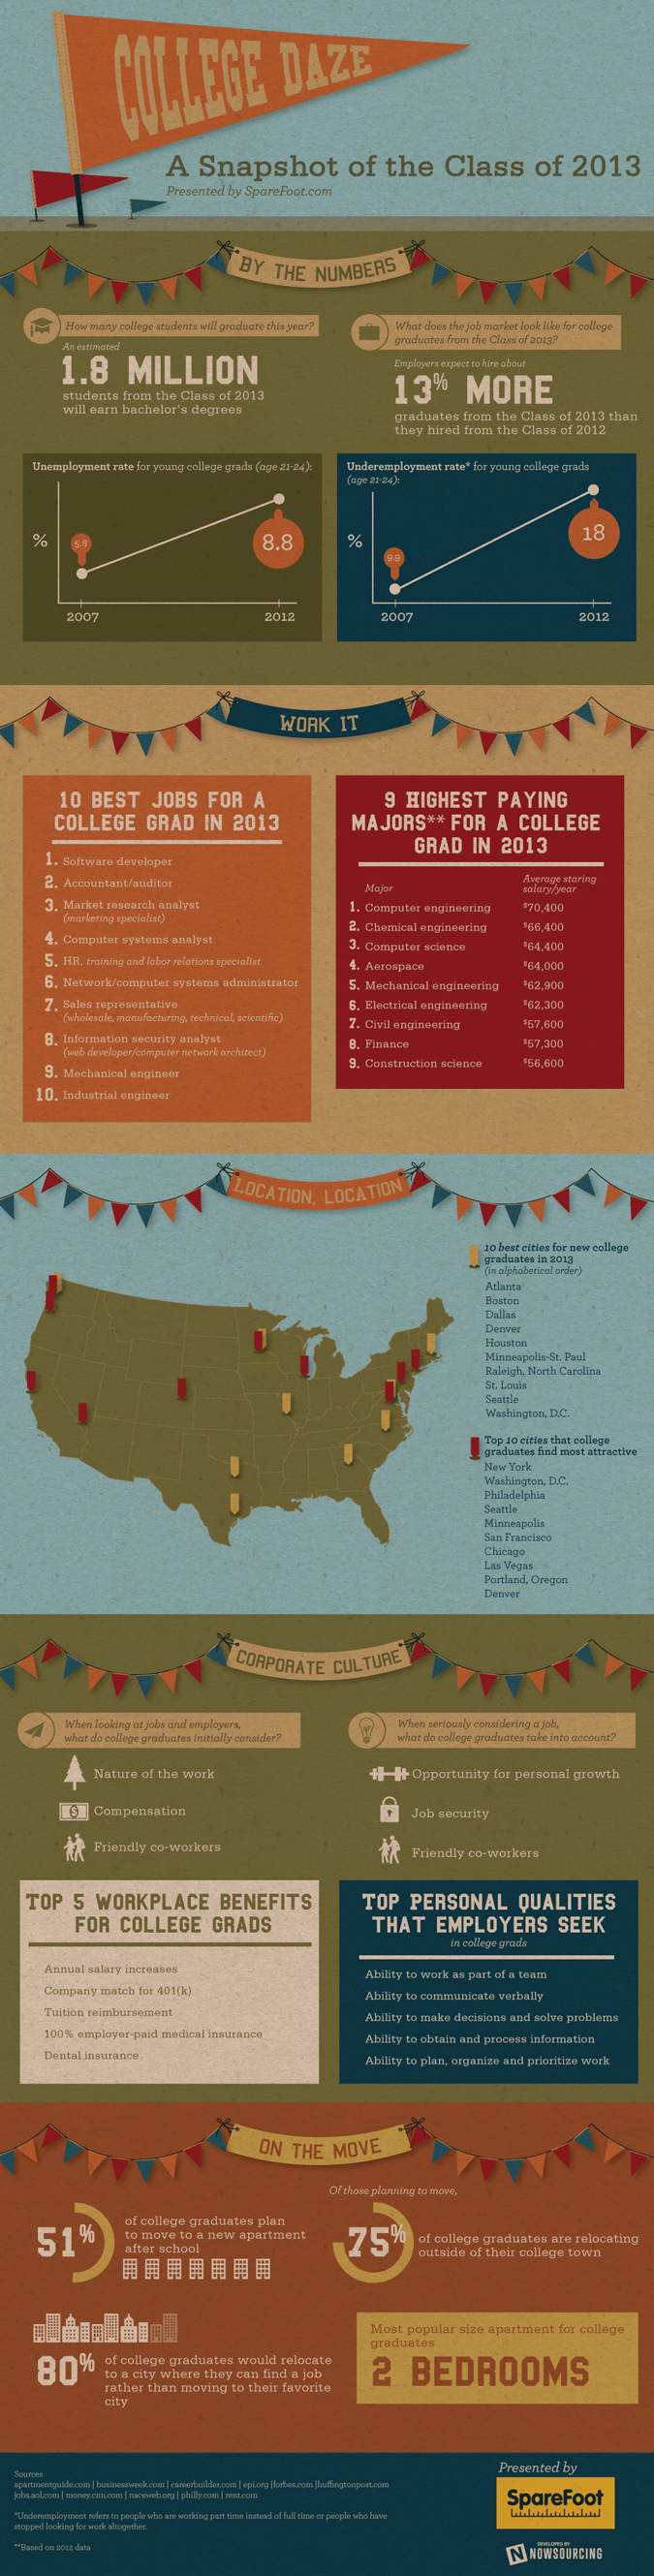 Sparefoot CollegeDaze College Class of 2013 Infographic